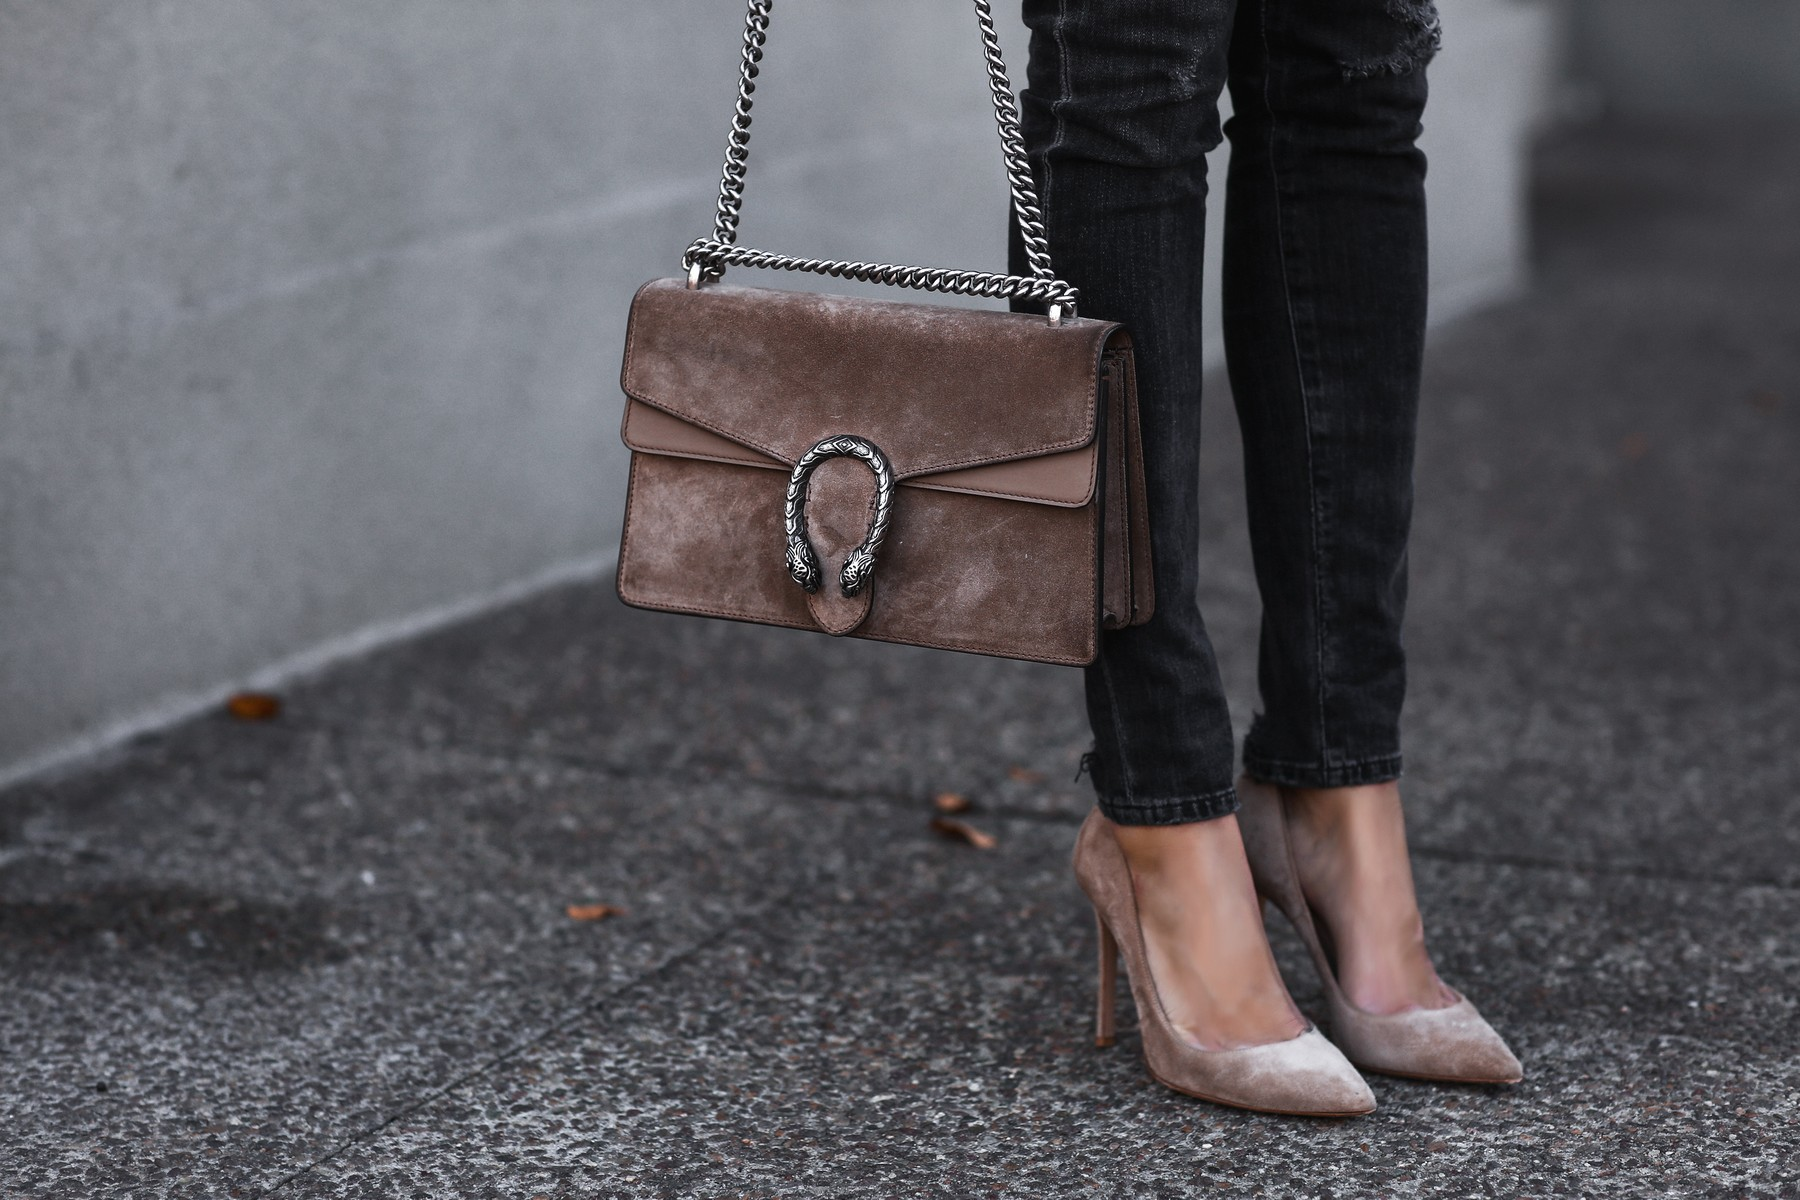 gucci bag, tan suede pumps